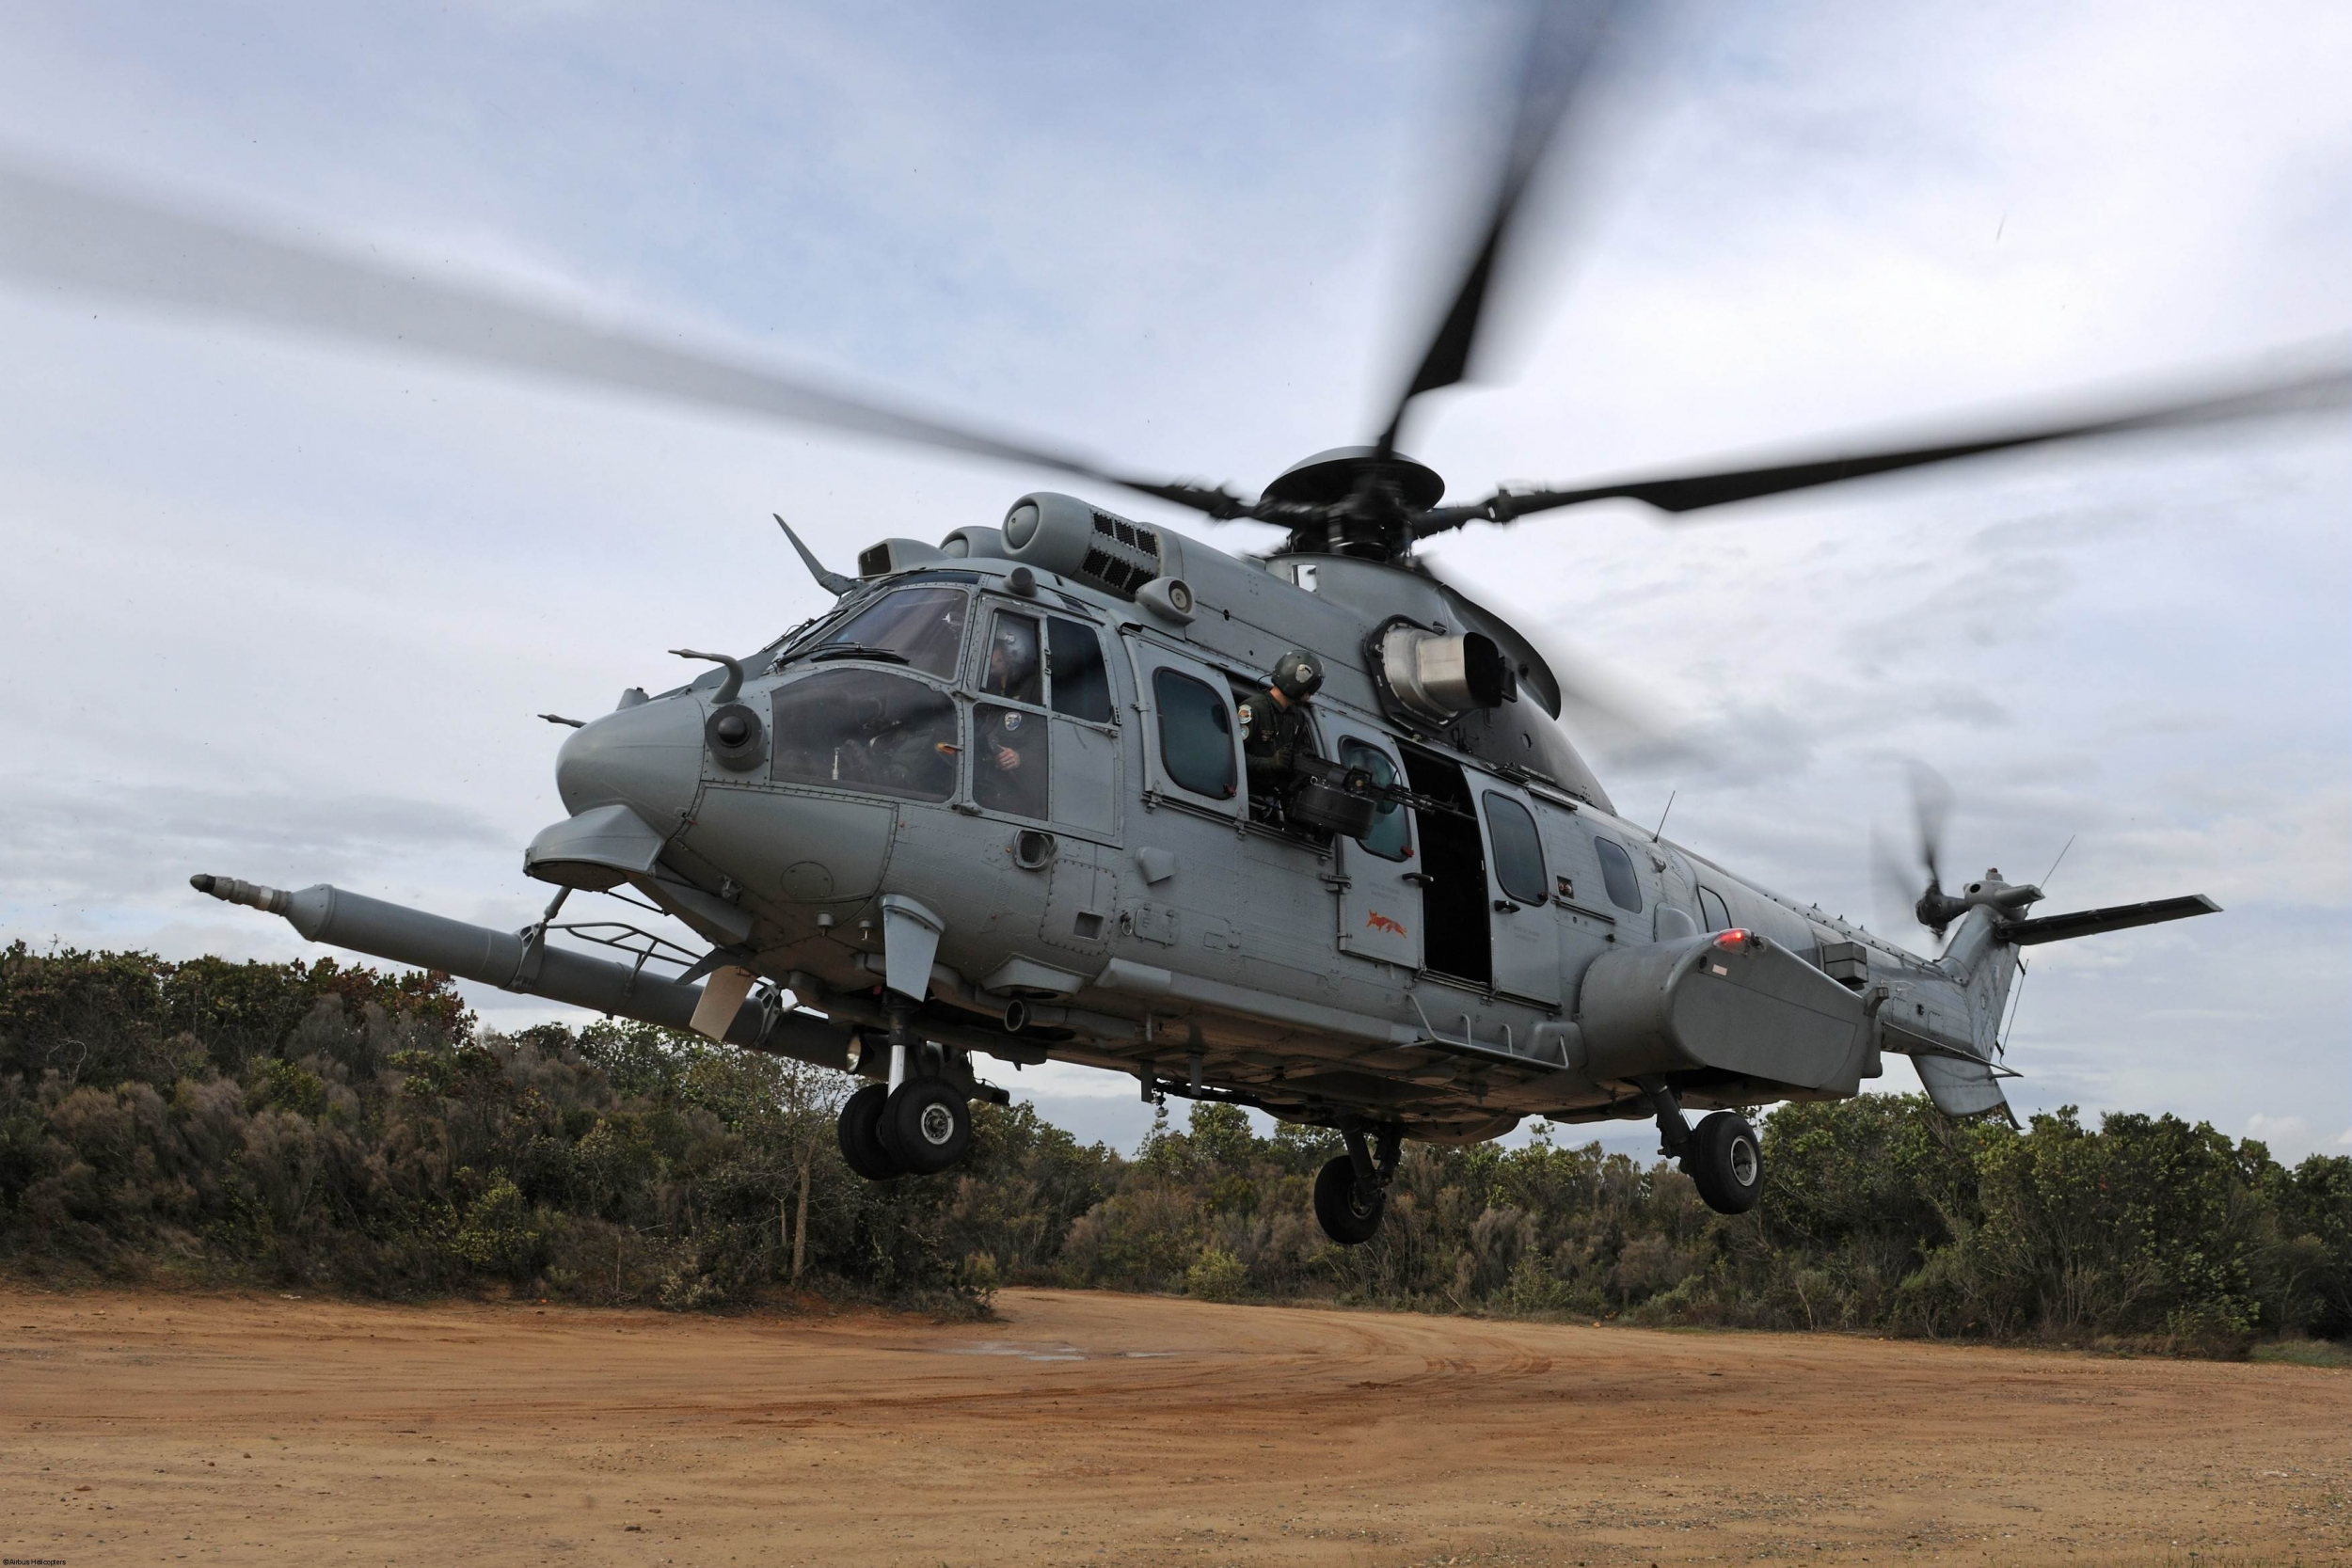 Military Vehicals For Sale >> Kuwait Signs Contract for 30 H225M Caracal Helicopters | Defense News: Aviation International News